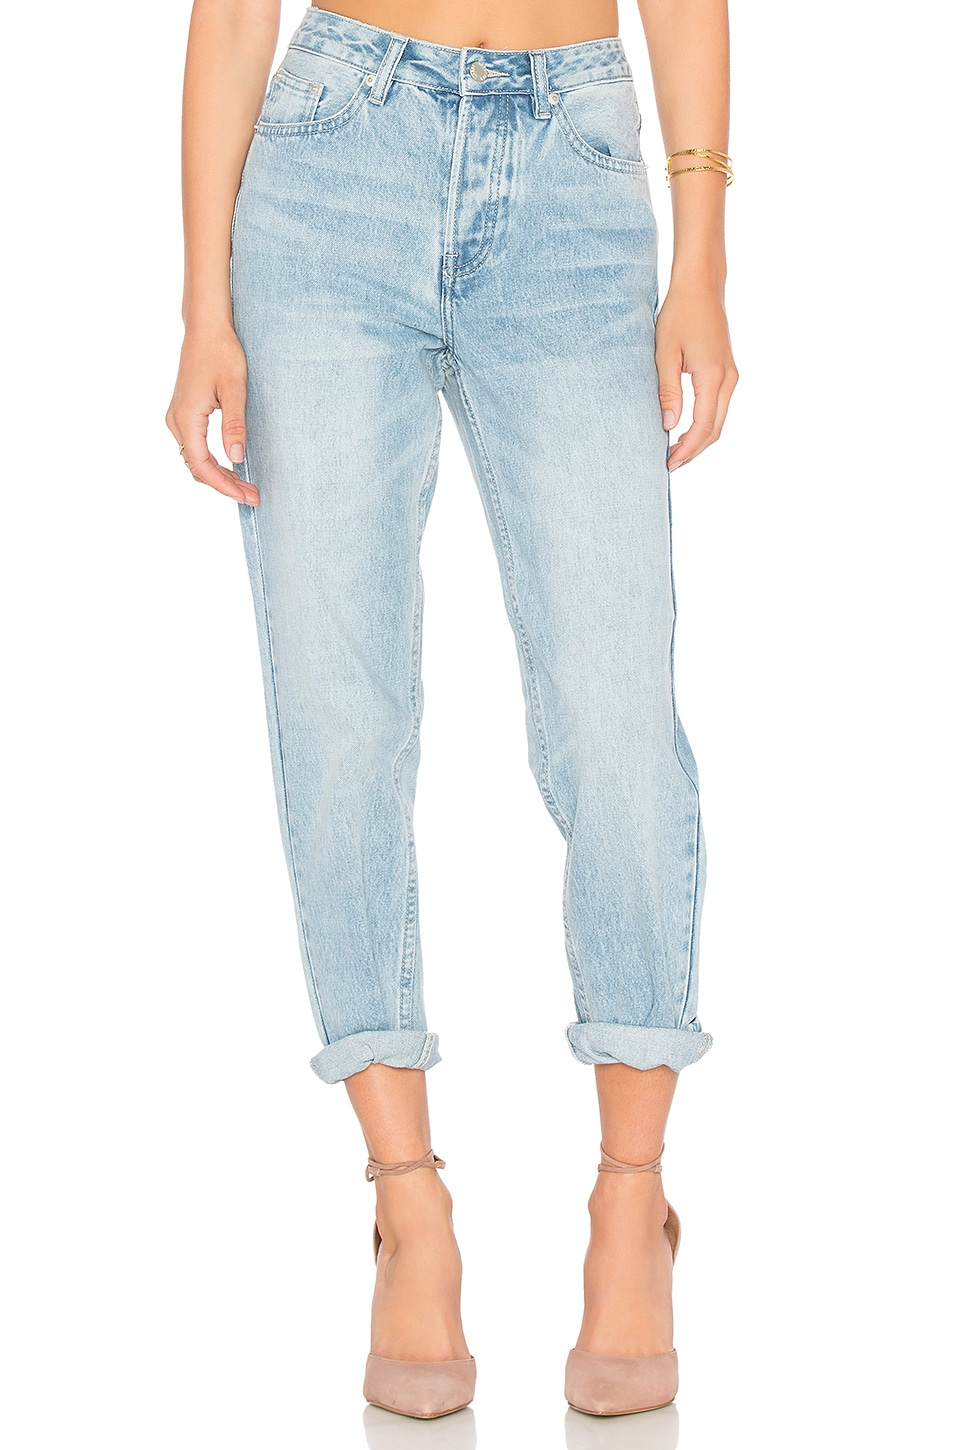 Assembly Label High Waist Jeans in Vintage Wash